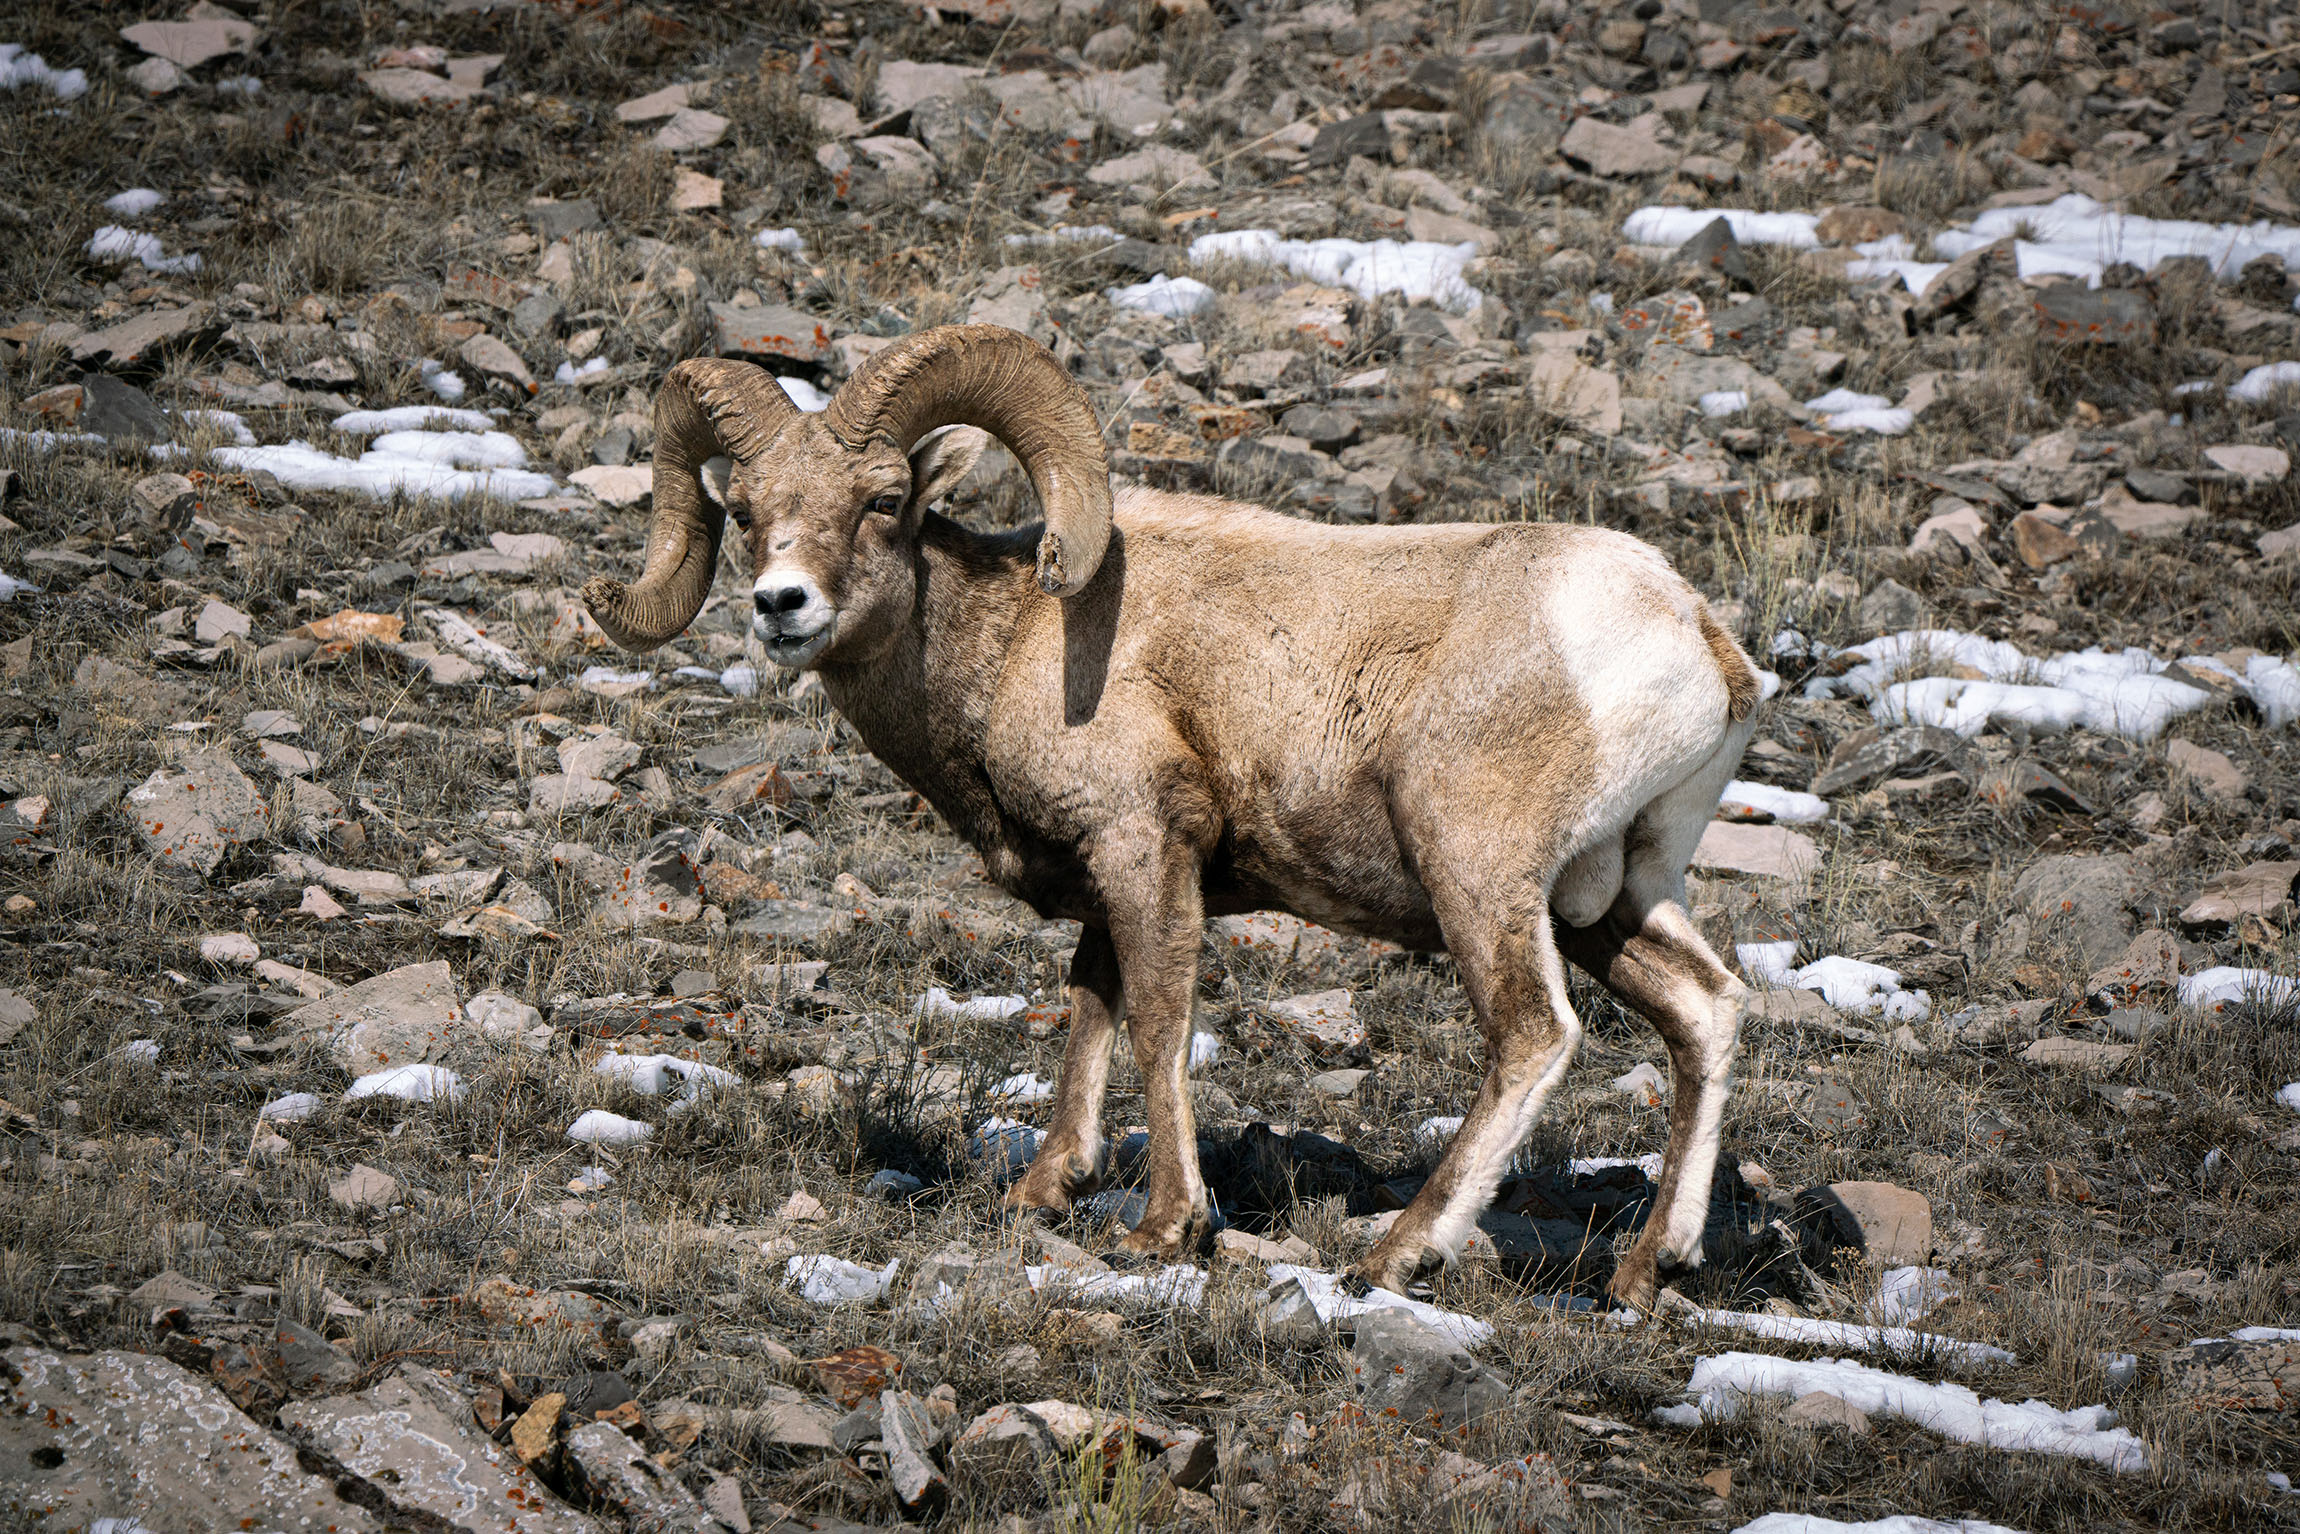 #bighornedsheep, #ram, #sheep, #wyoming, #wildlife, #wildlifephotography, #nature, #elkrefuge, #jacksonhole, #family, #horns, #nationalpark, #gtnp, #grandtetonnationalpark